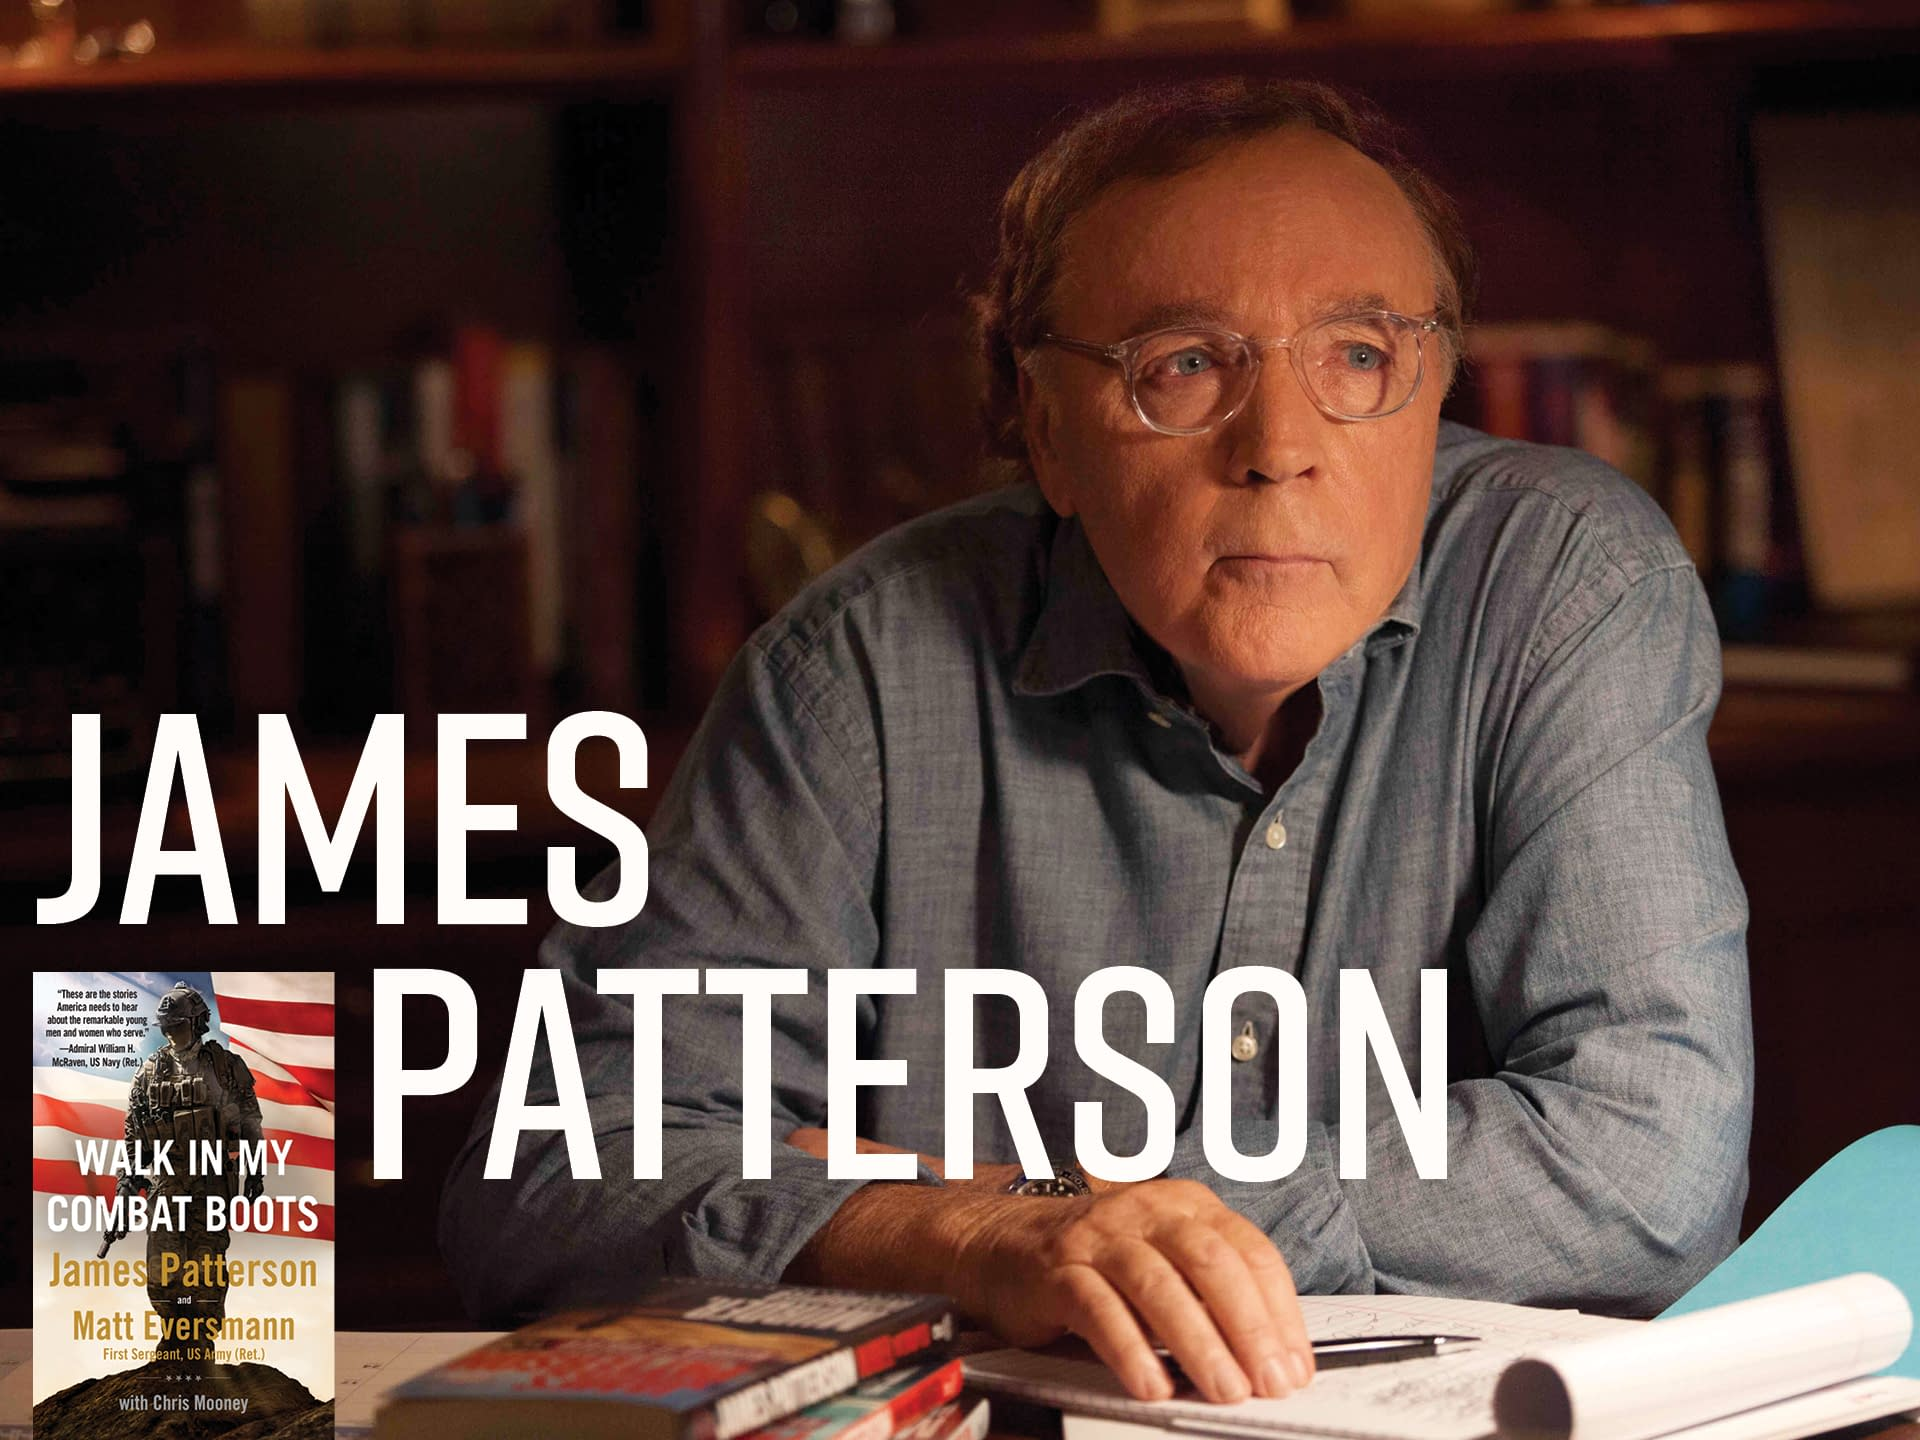 James Patterson - James Patterson - The Red Book